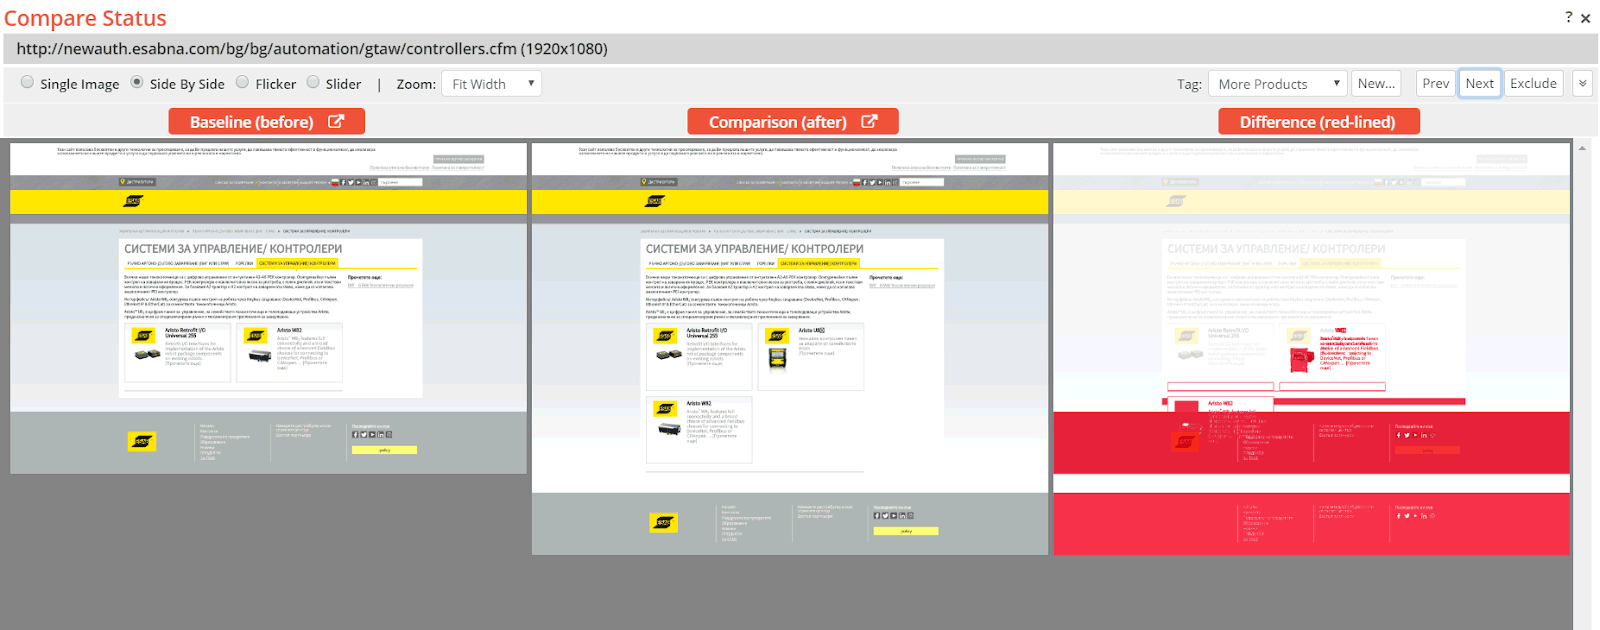 A submenu item beneath the ESAB yellow banner was not rendered correctly